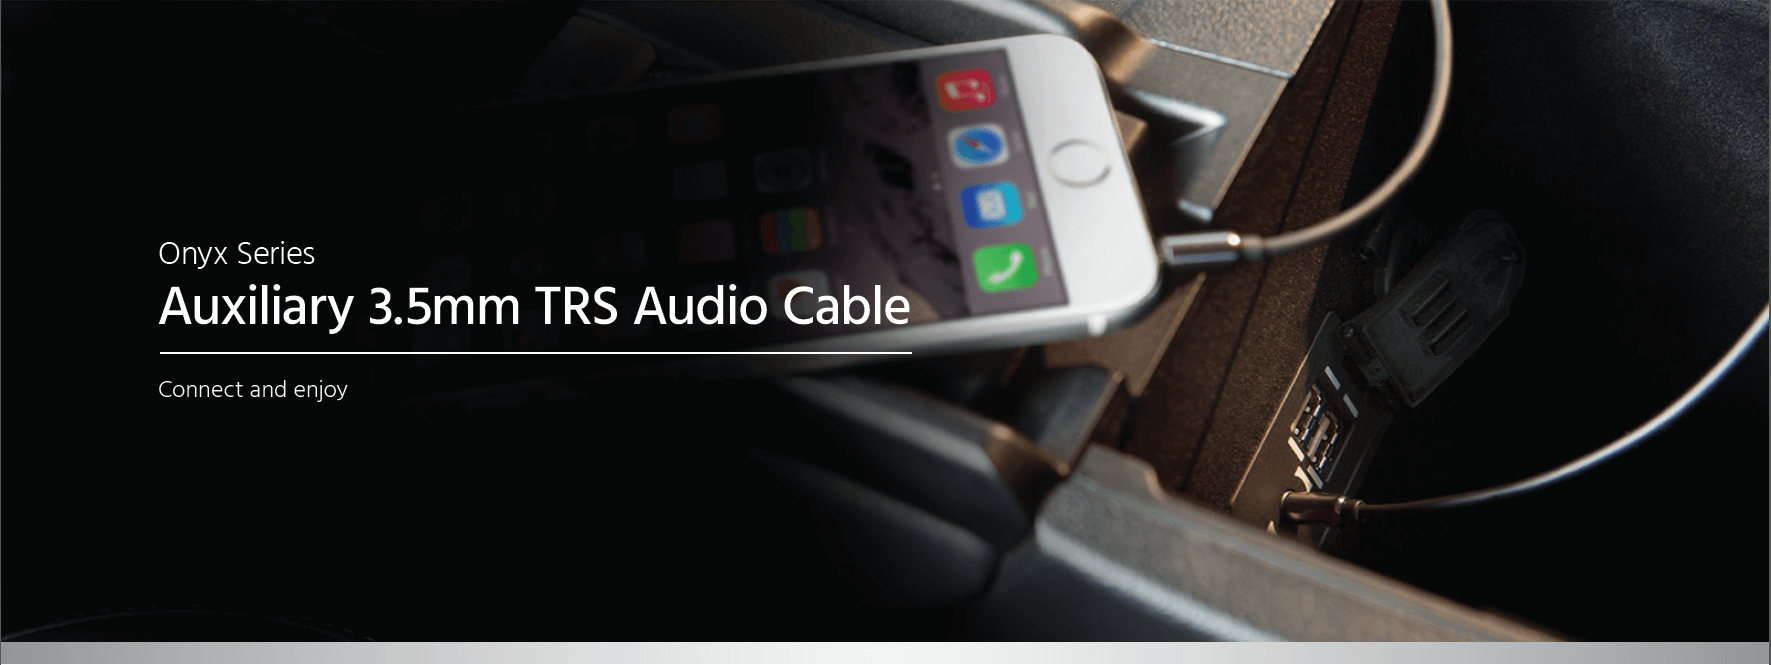 Auxiliary 3.5mm TRS Audio Cable